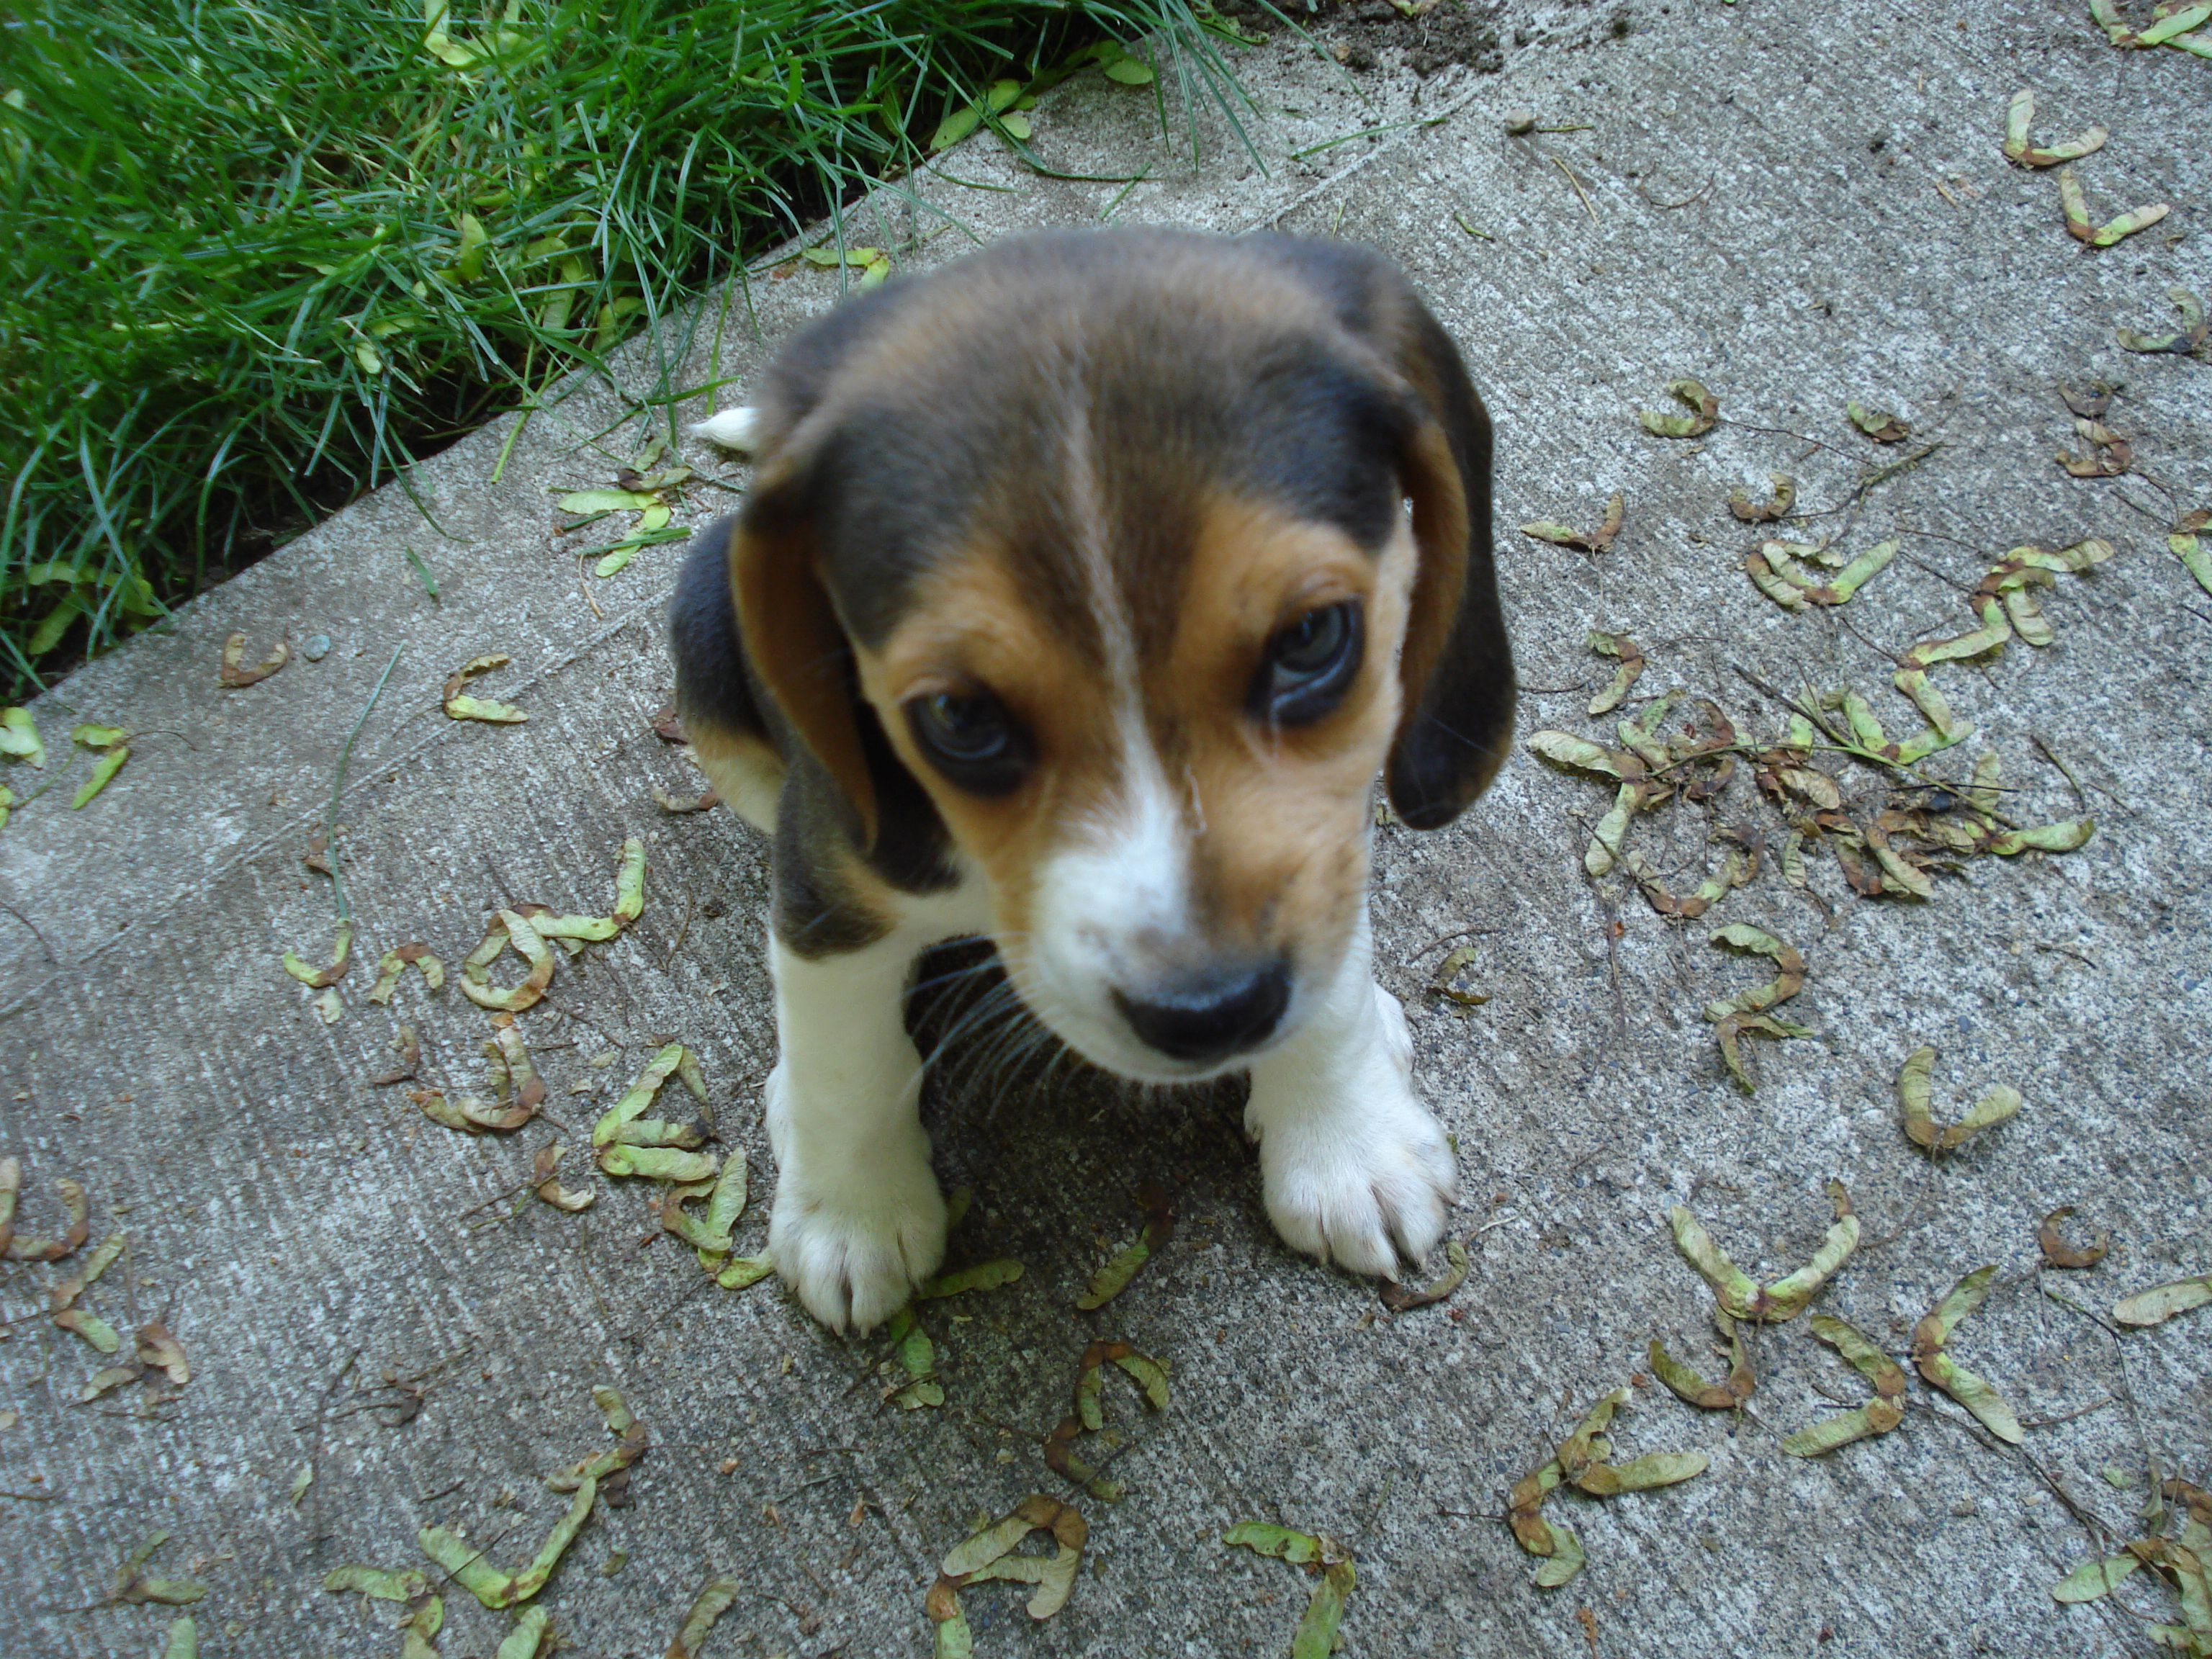 Adorable beagle puppy looking guilty animals pinterest adorable beagle puppy looking guilty voltagebd Image collections